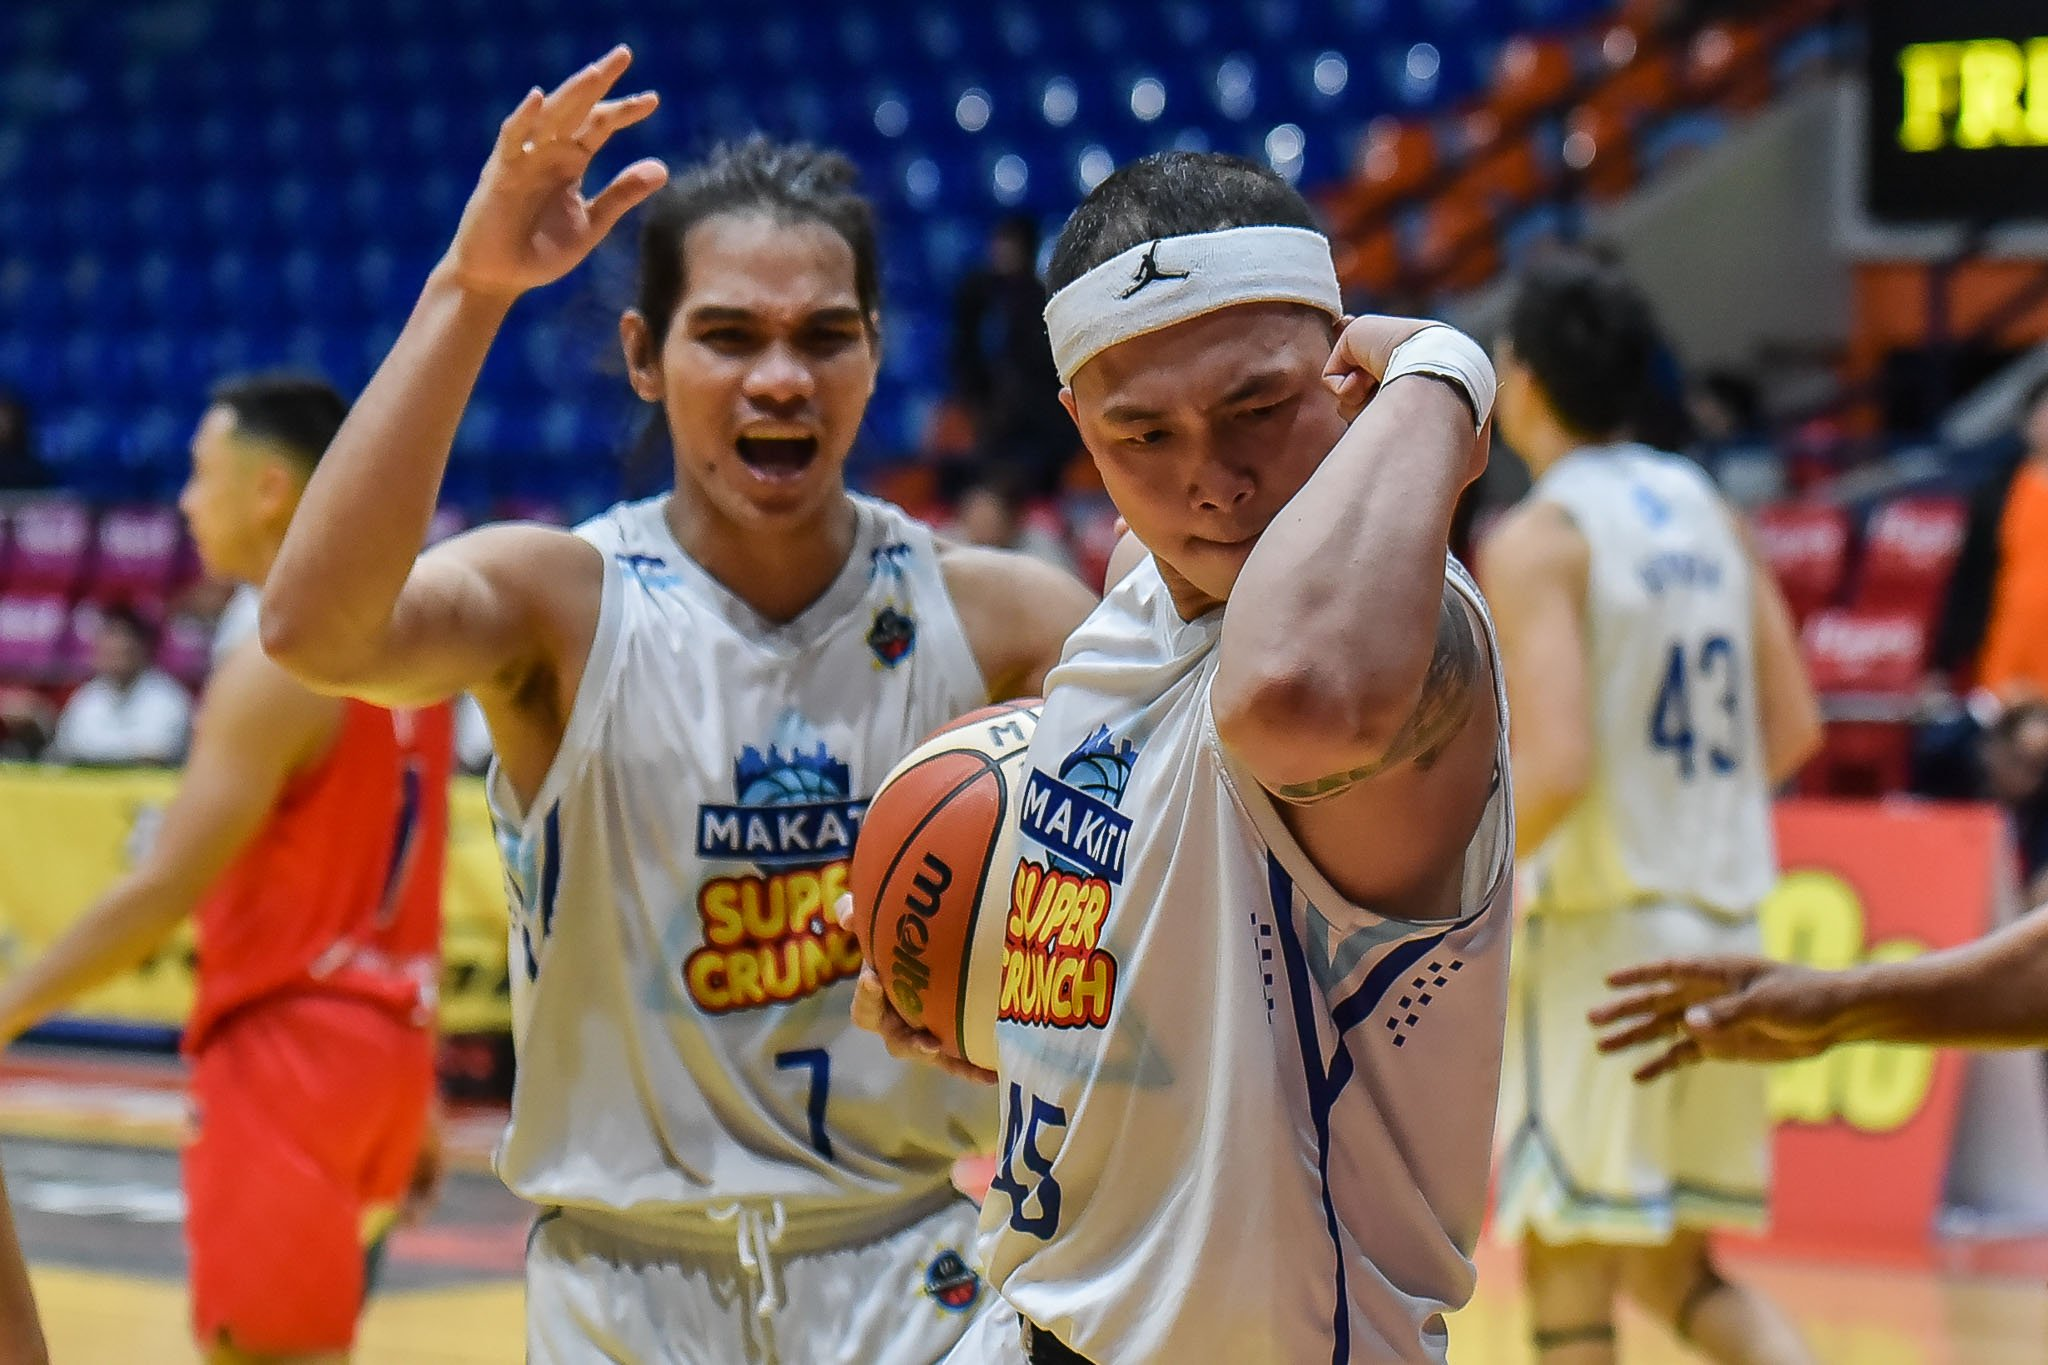 Tiebreaker Times Jong Baloria glad to hit MPBL milestone, give Makati another shot in one game Basketball MPBL News  Makati Super Crunch Juneric Baloria 2019-20 MPBL Lakan Cup